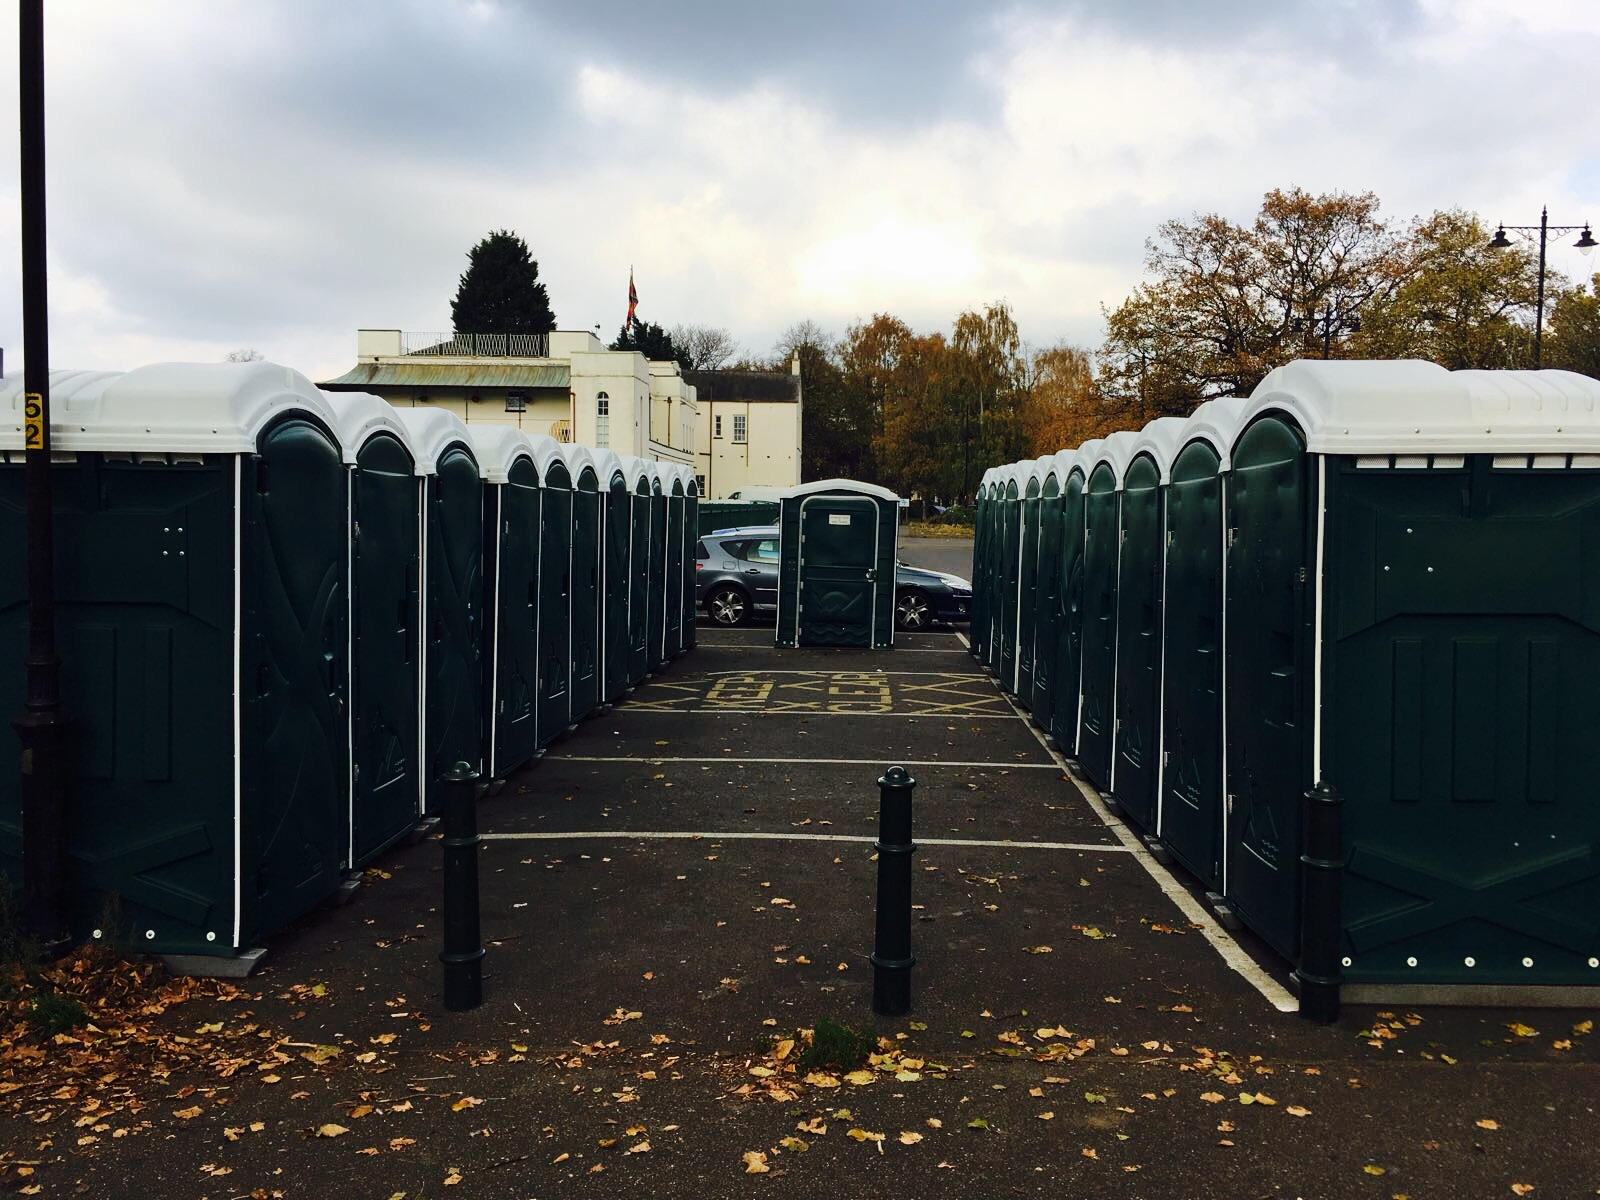 Any occasion event toilets at racecourse Northampton